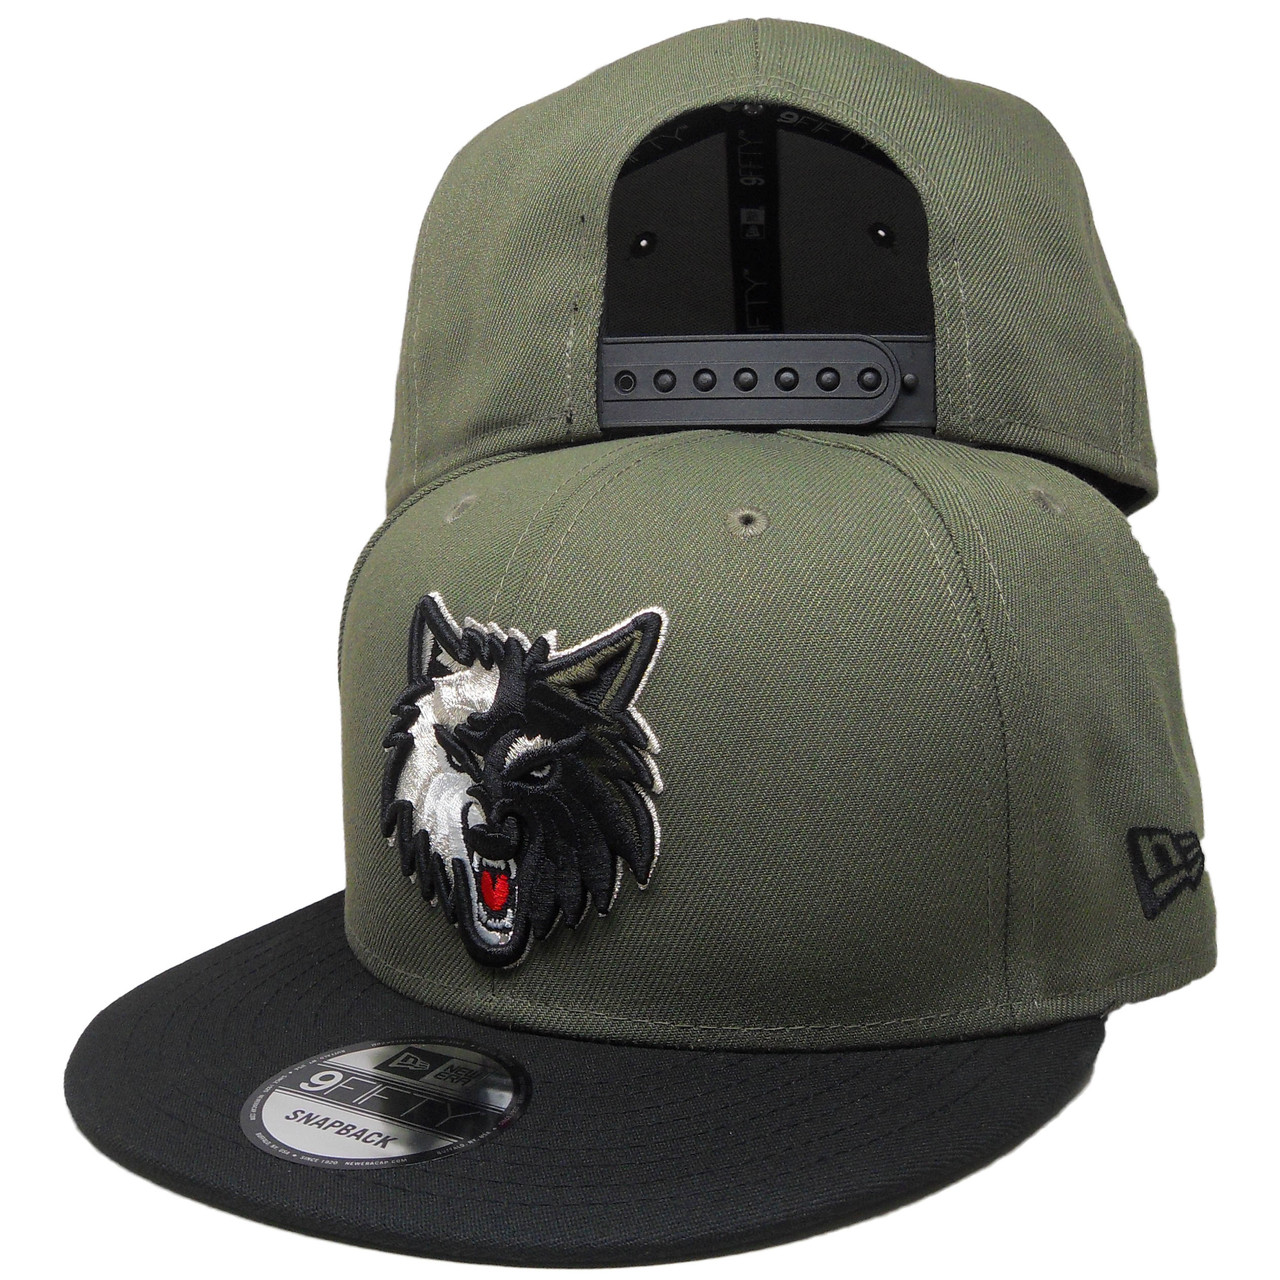 4f6cee8cbf93af Minnesota Timberwolves New Era Custom 9Fifty Snapback - Olive, Black,  Silver - ECapsUnlimited.com